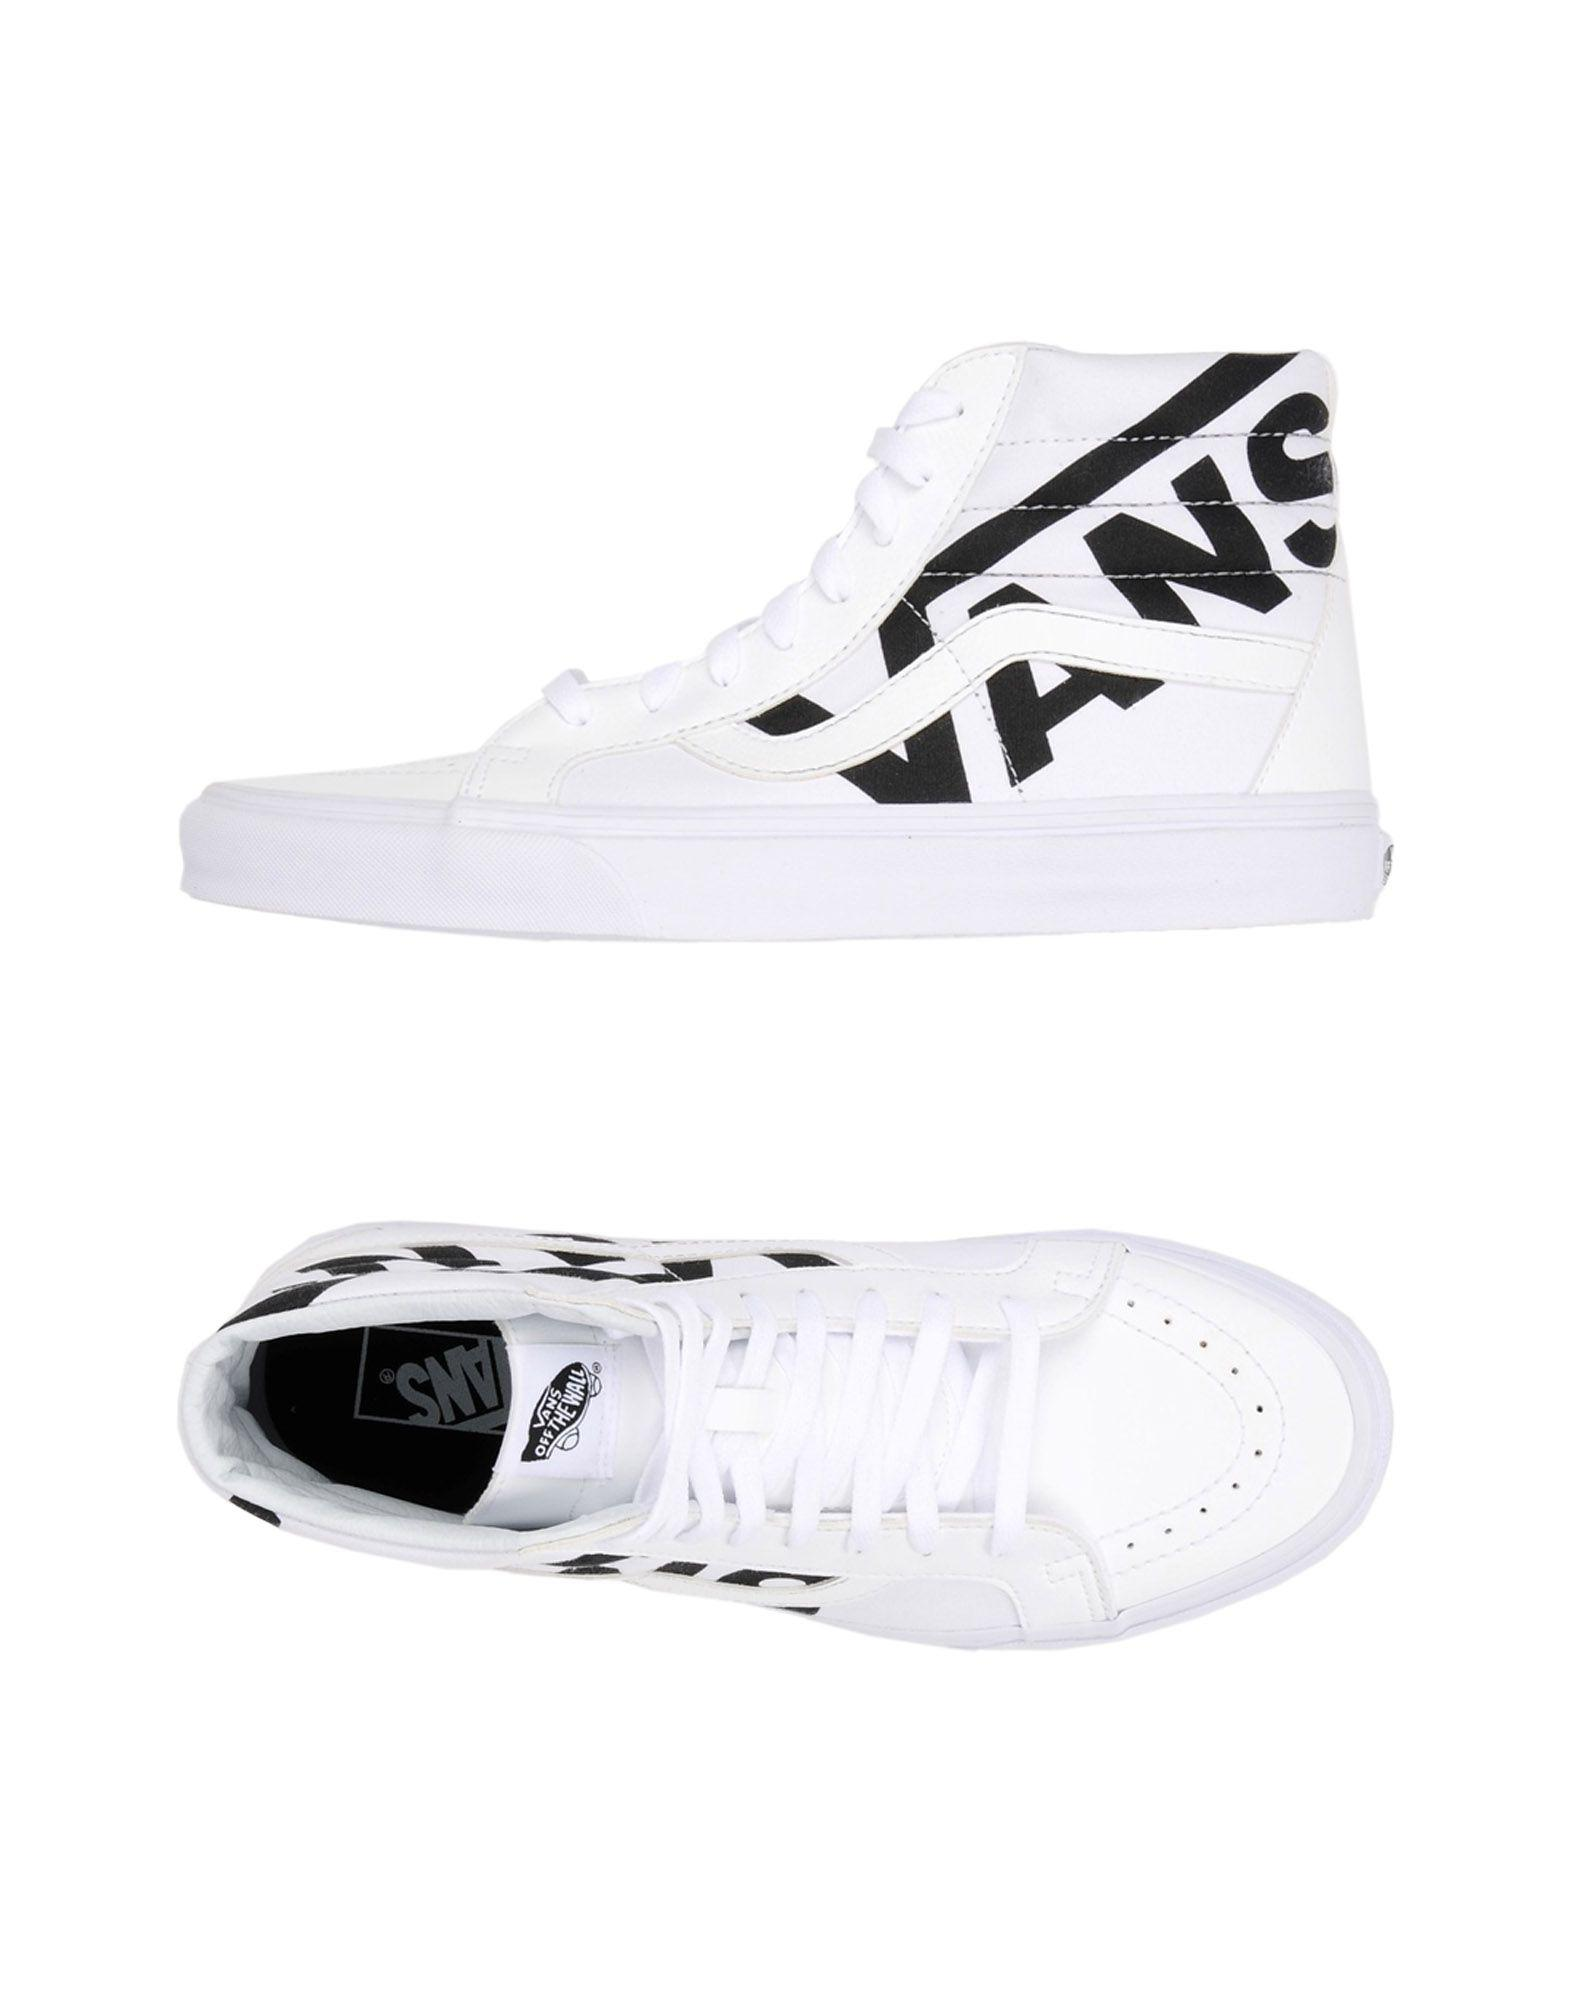 cfdf99e5ddeb82 Vans High-tops   Sneakers in White for Men - Save 8% - Lyst